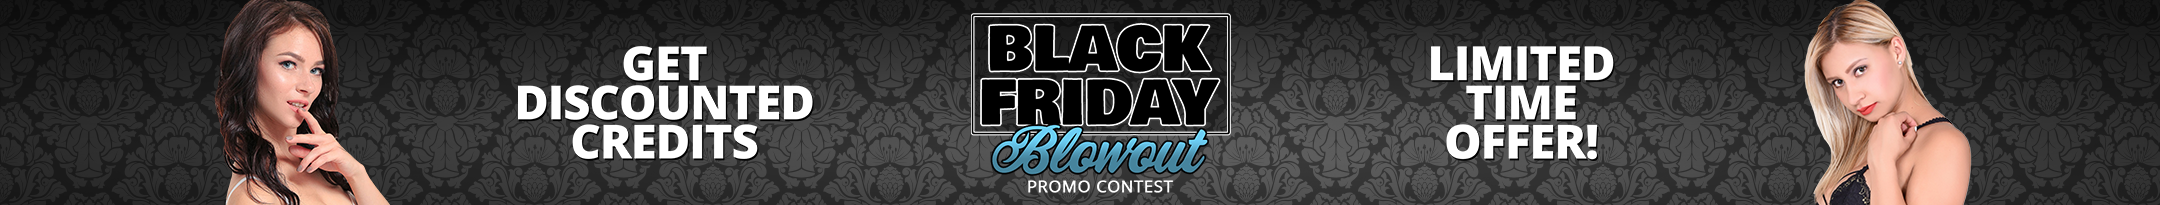 Black Friday BLOWOUT Promo